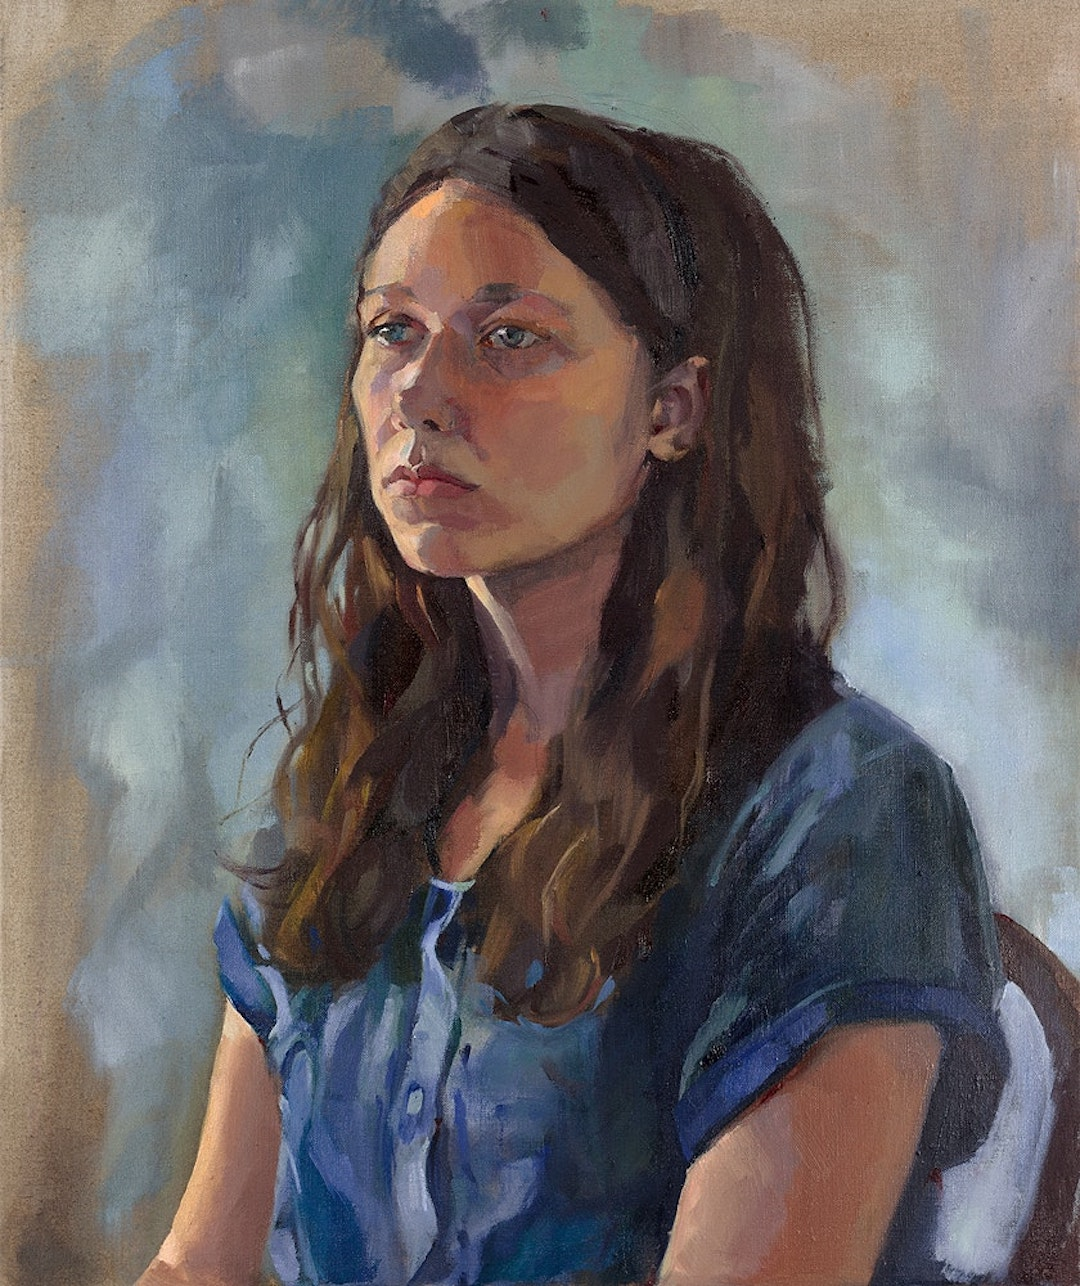 The Portrait of a Young Artist Jenny Fay Oil on Linen, 61cm x 51cm